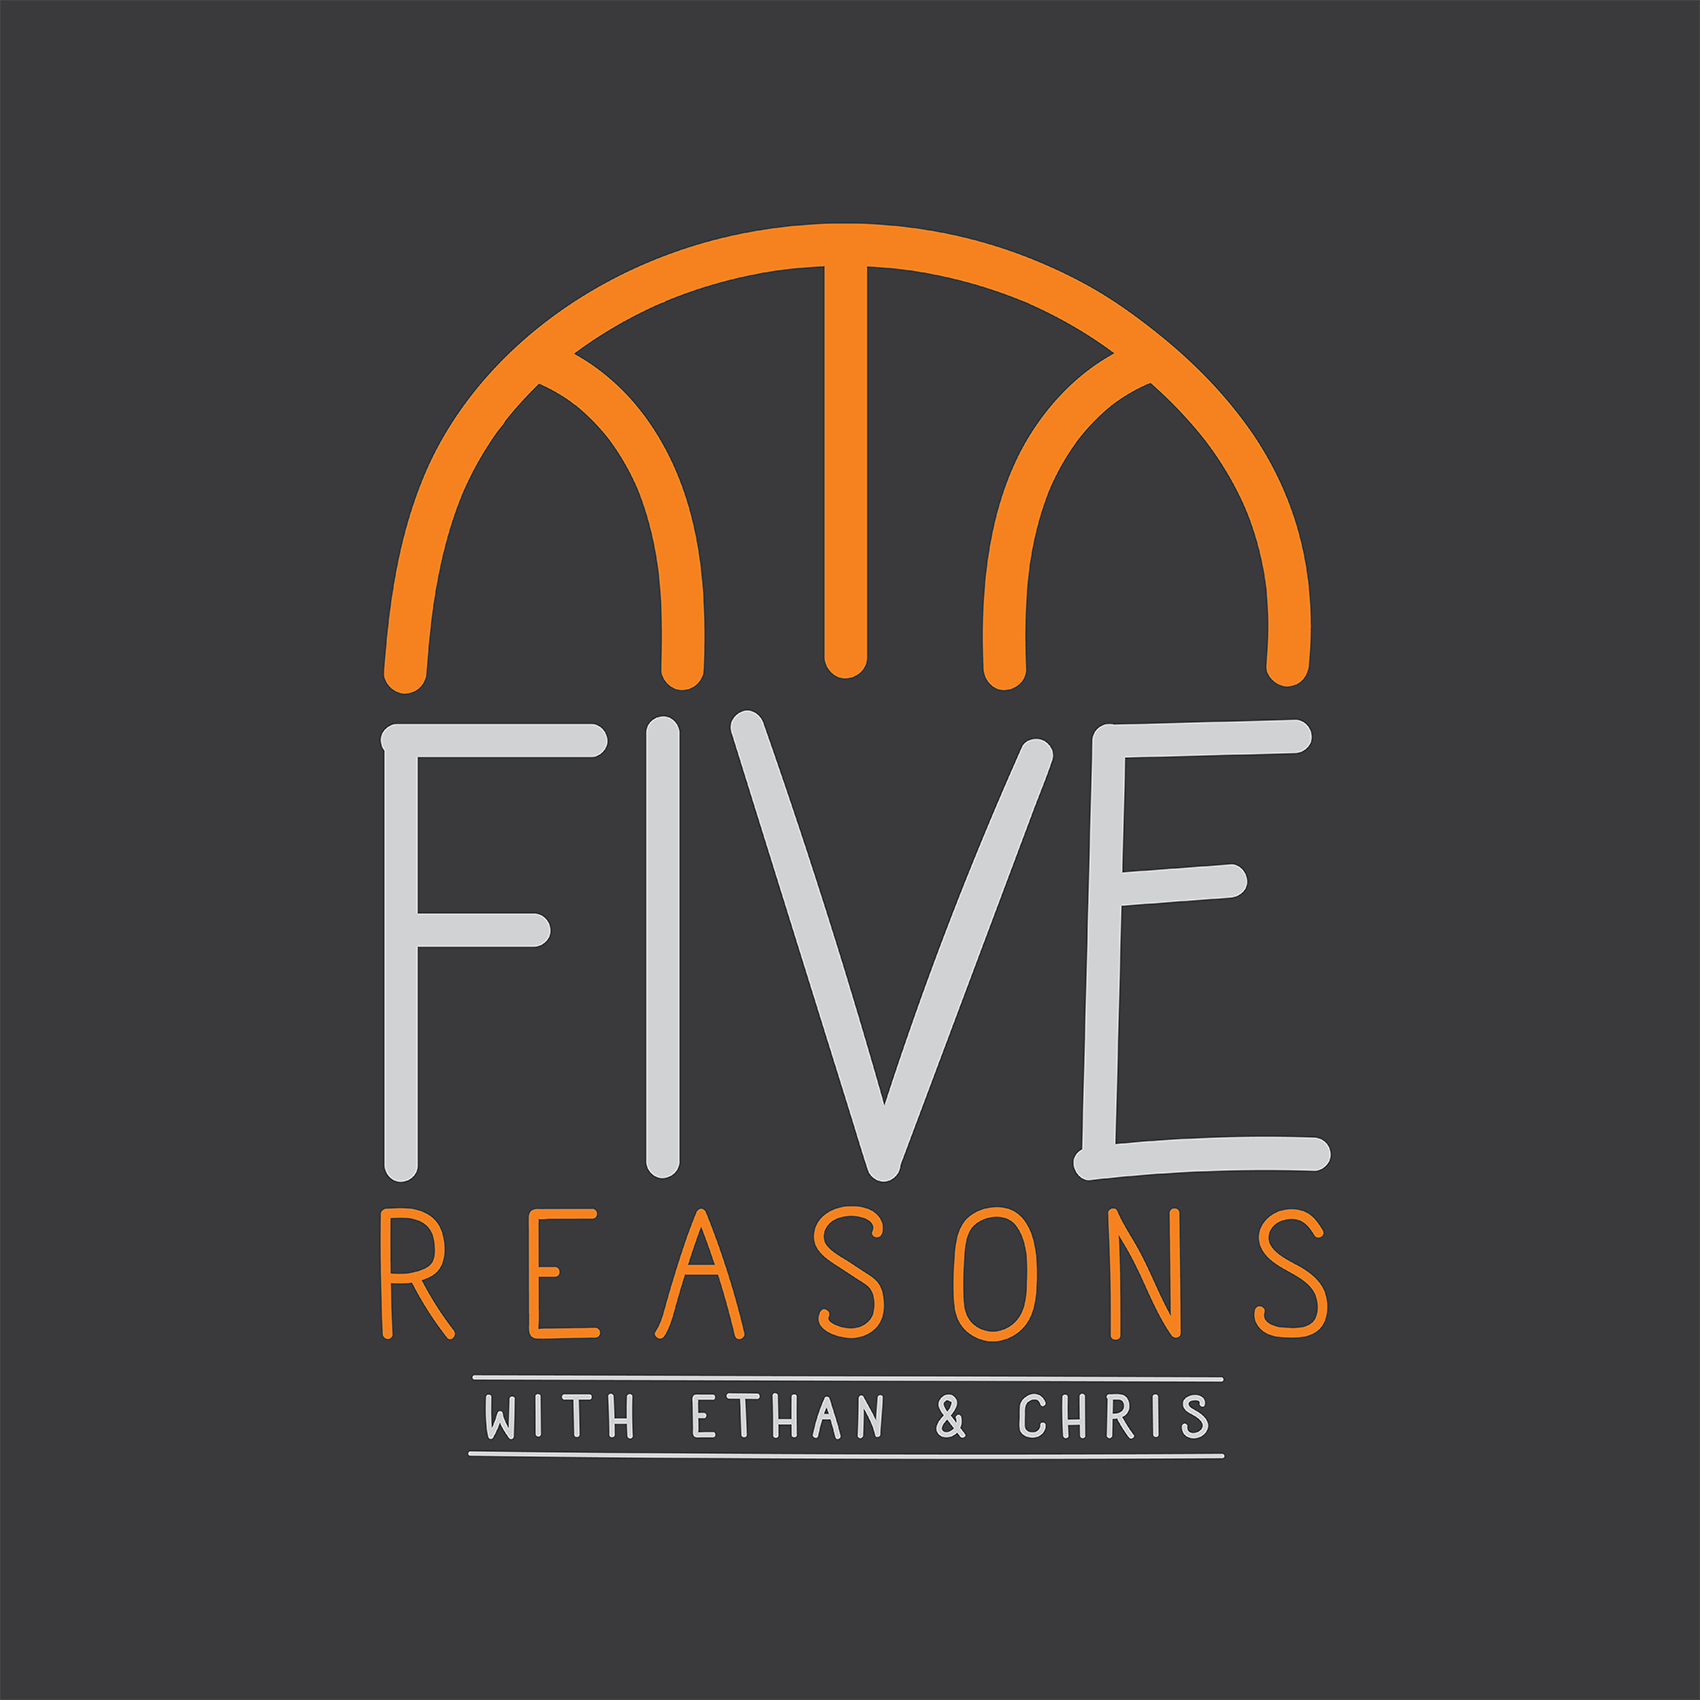 Five Reasons Sports — Miami